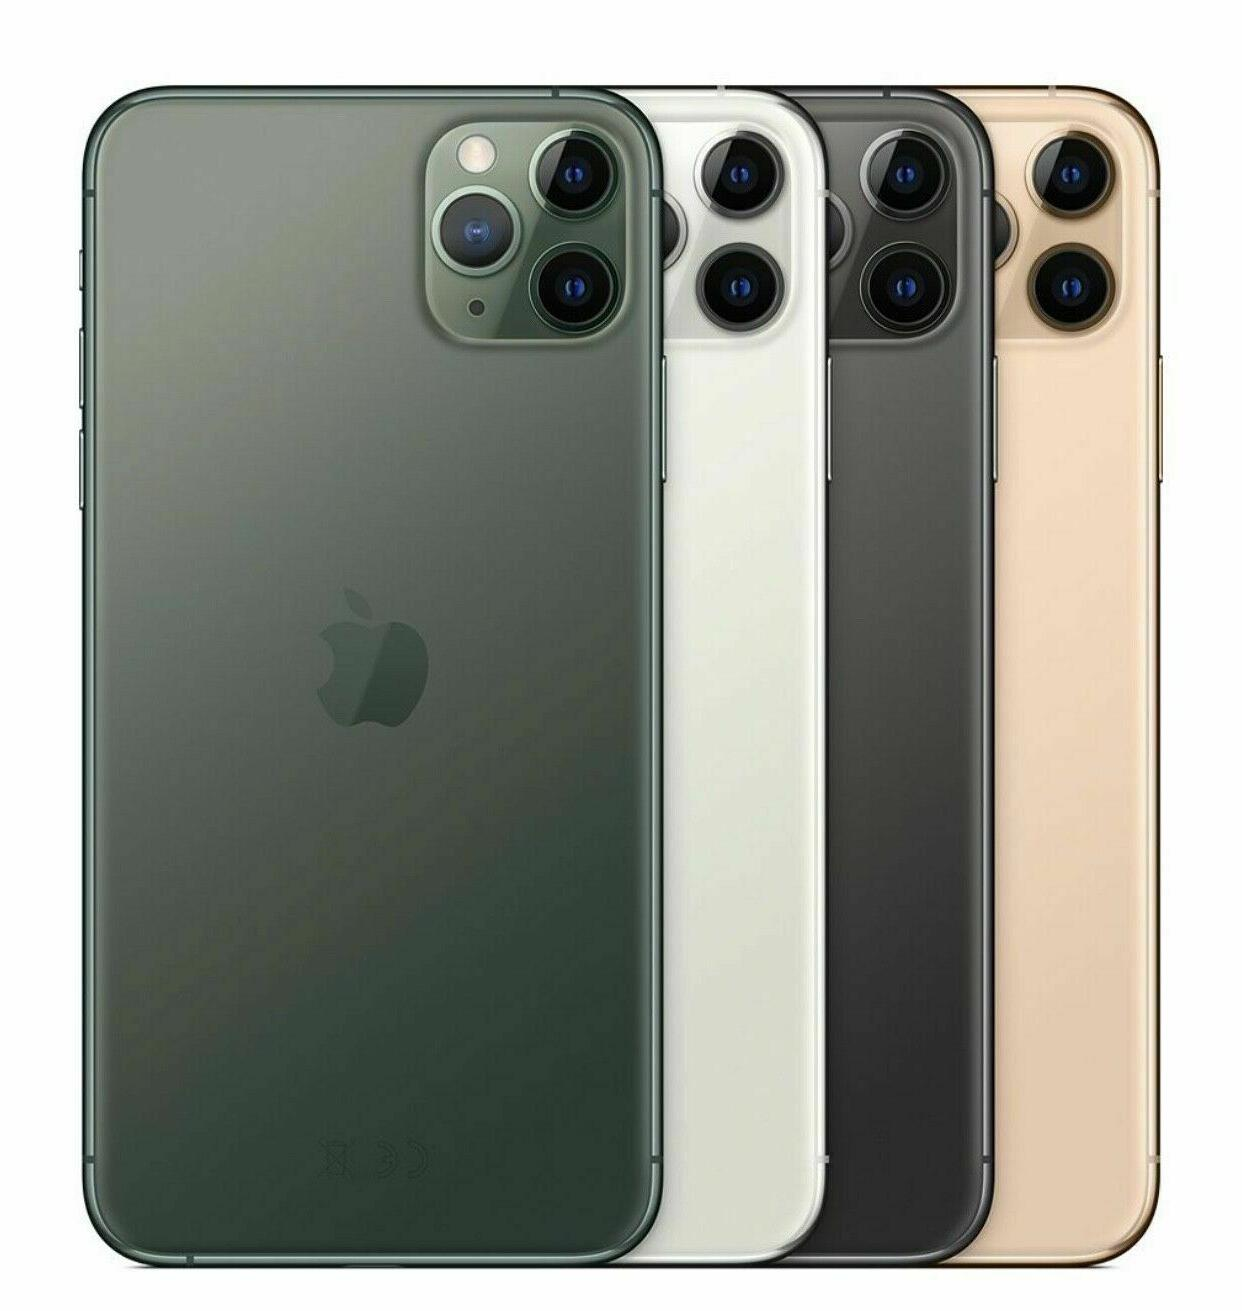 iphone 11 pro max all colors 64